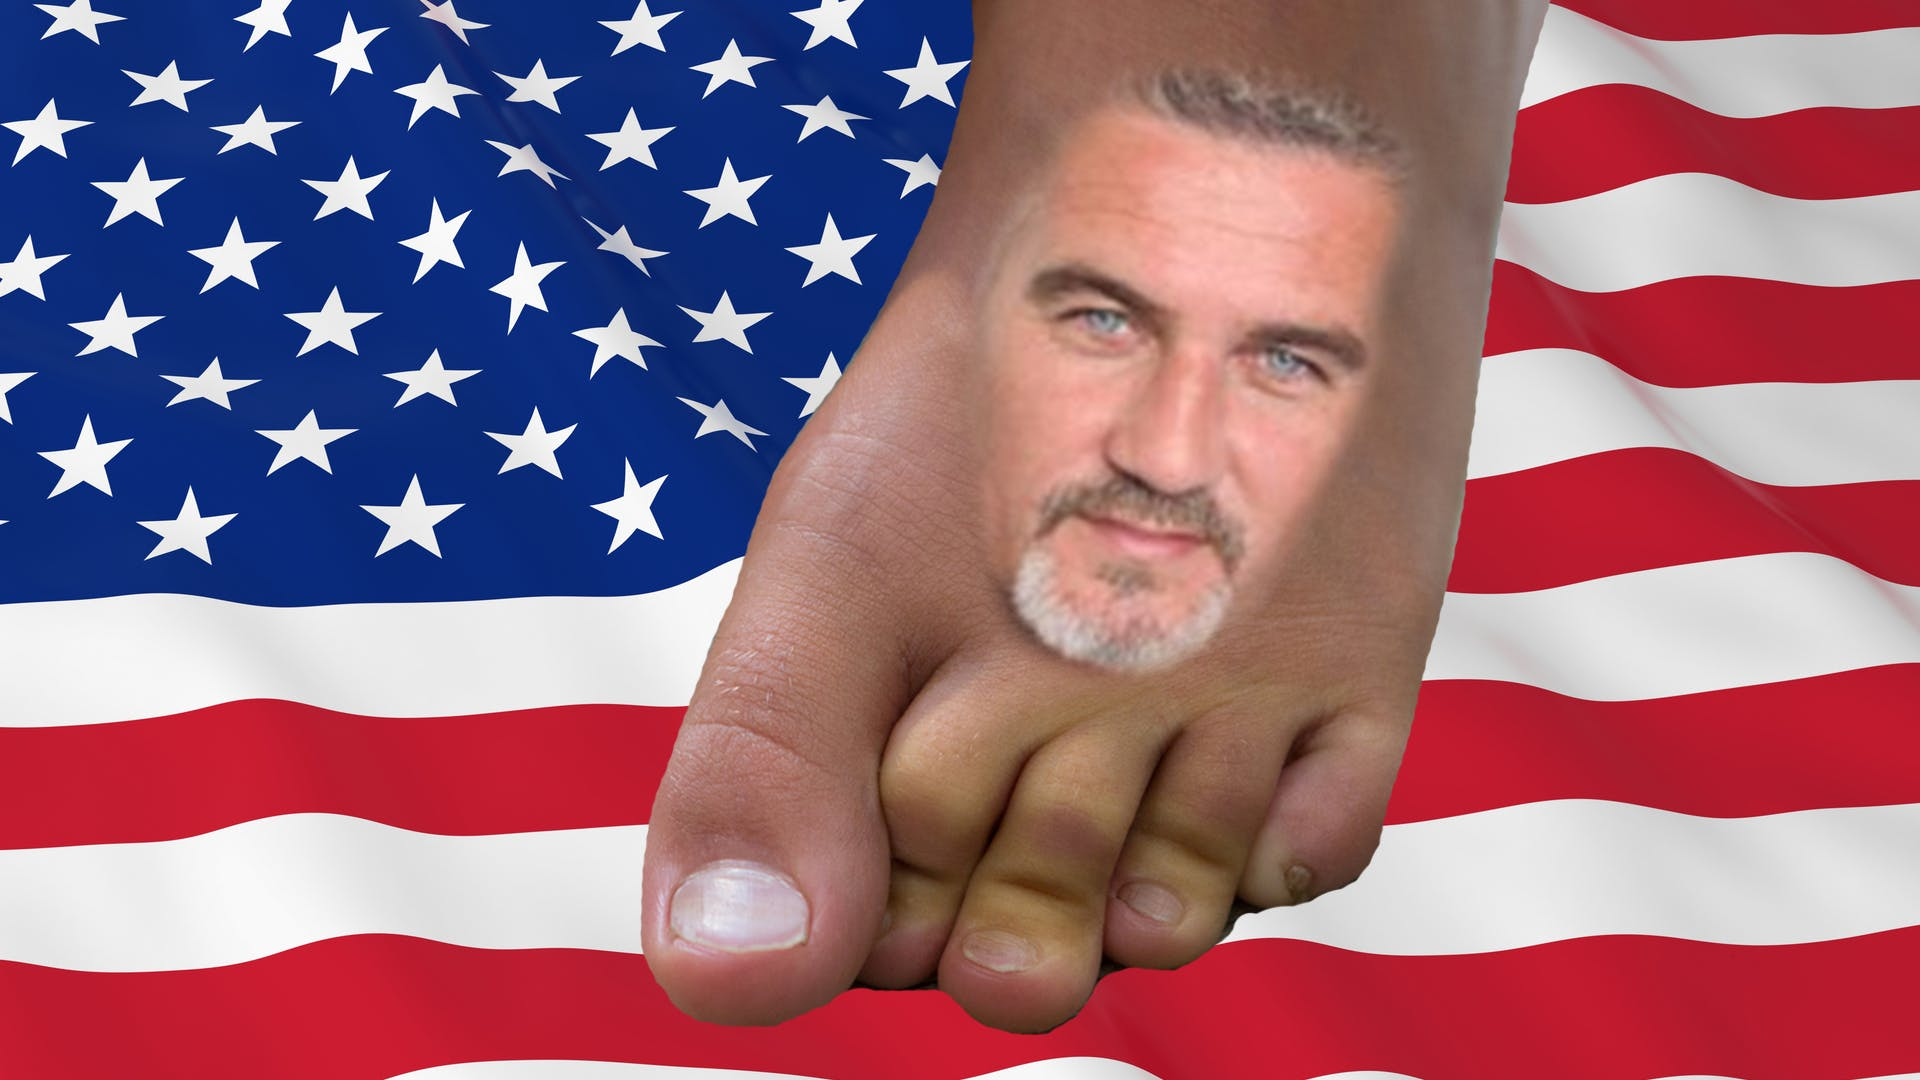 Paul Hollywood on a foot with an american flag in the background